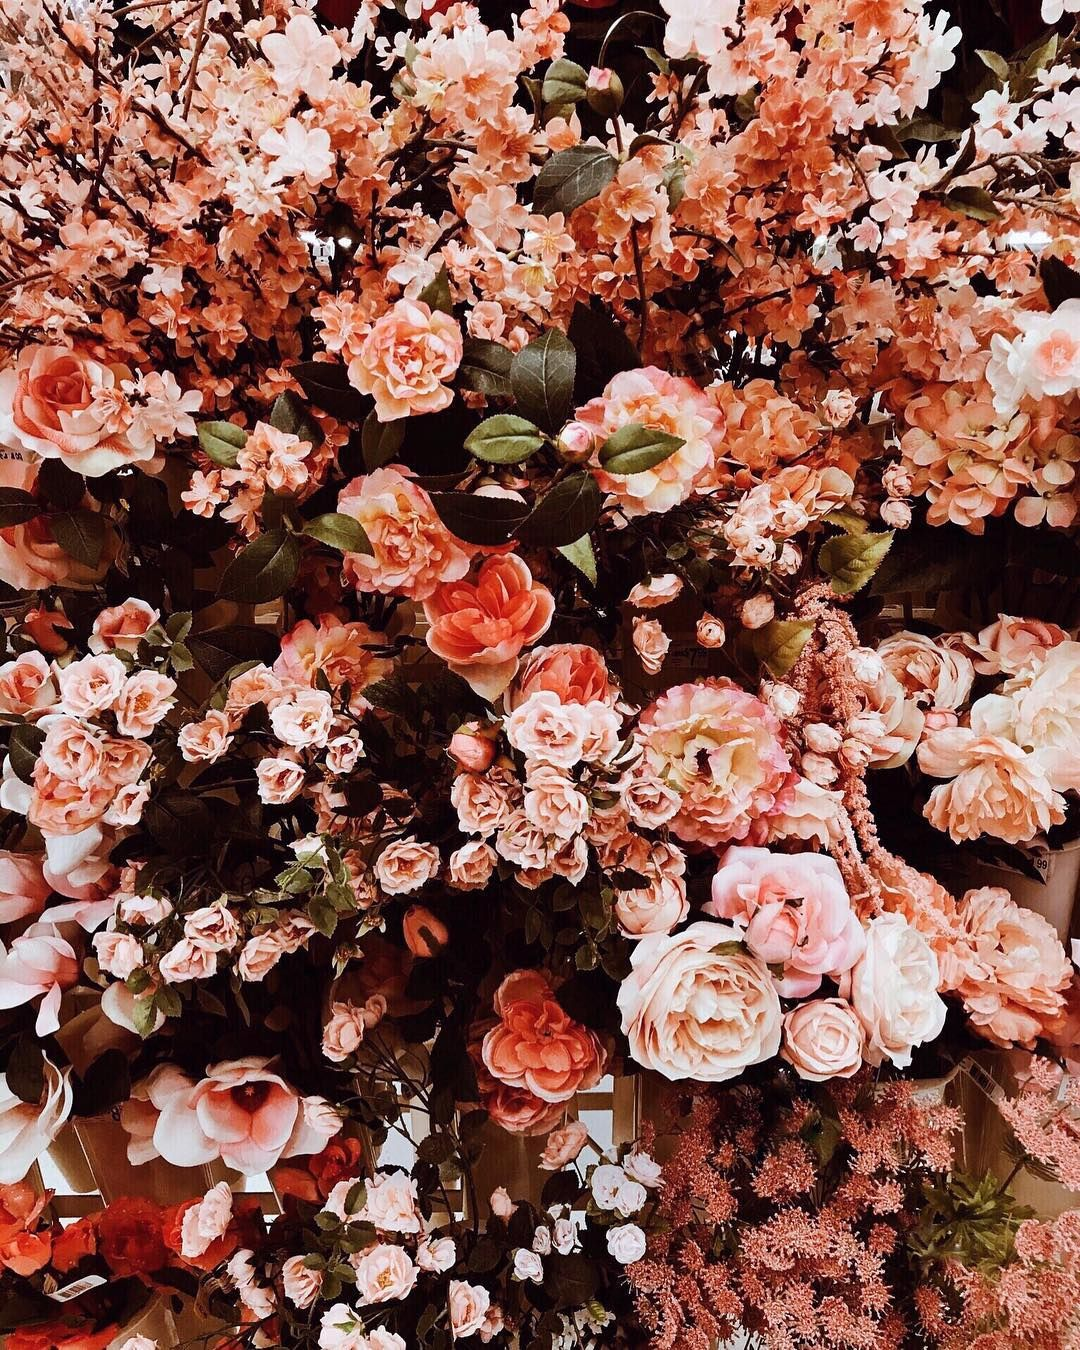 Who Else Is Sleeping In Tomorrow How I Feel About This Week Haha It S Been A Whirlwind I T Flower Aesthetic Beautiful Flowers Wallpapers Pretty Flowers